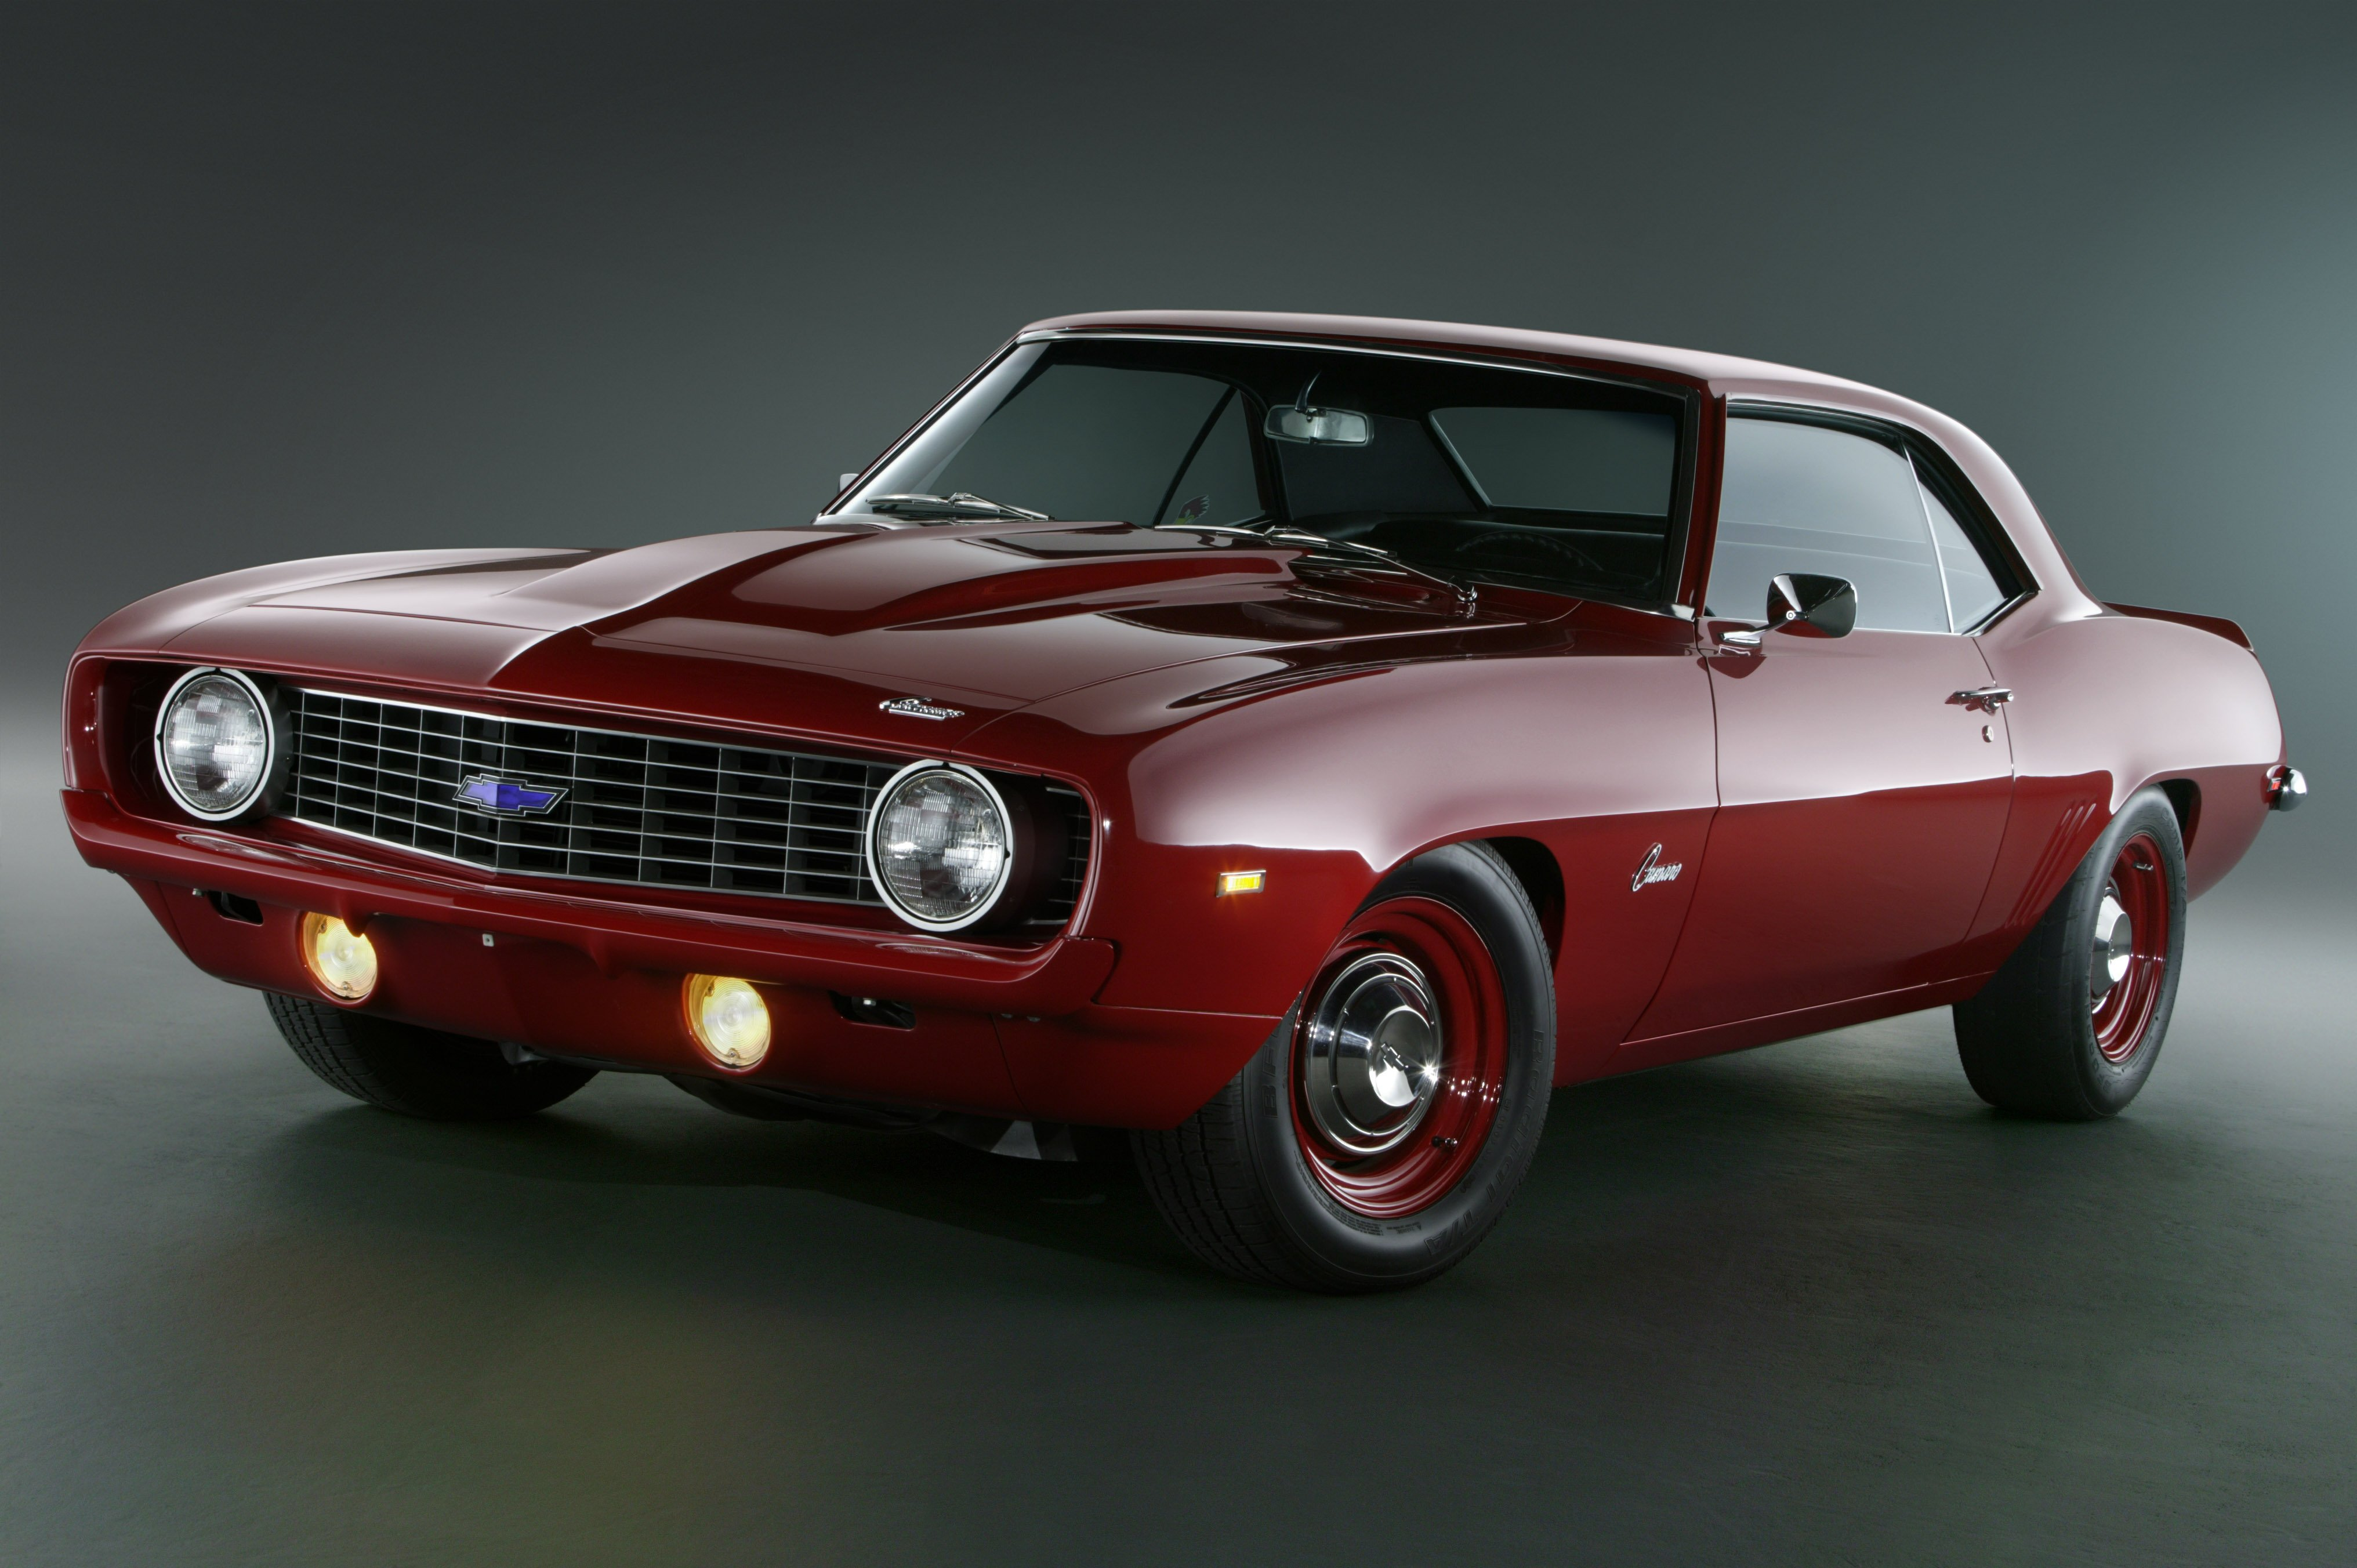 1969 chevrolet camaro l72 427 425hp copo muscle classic wallpaper